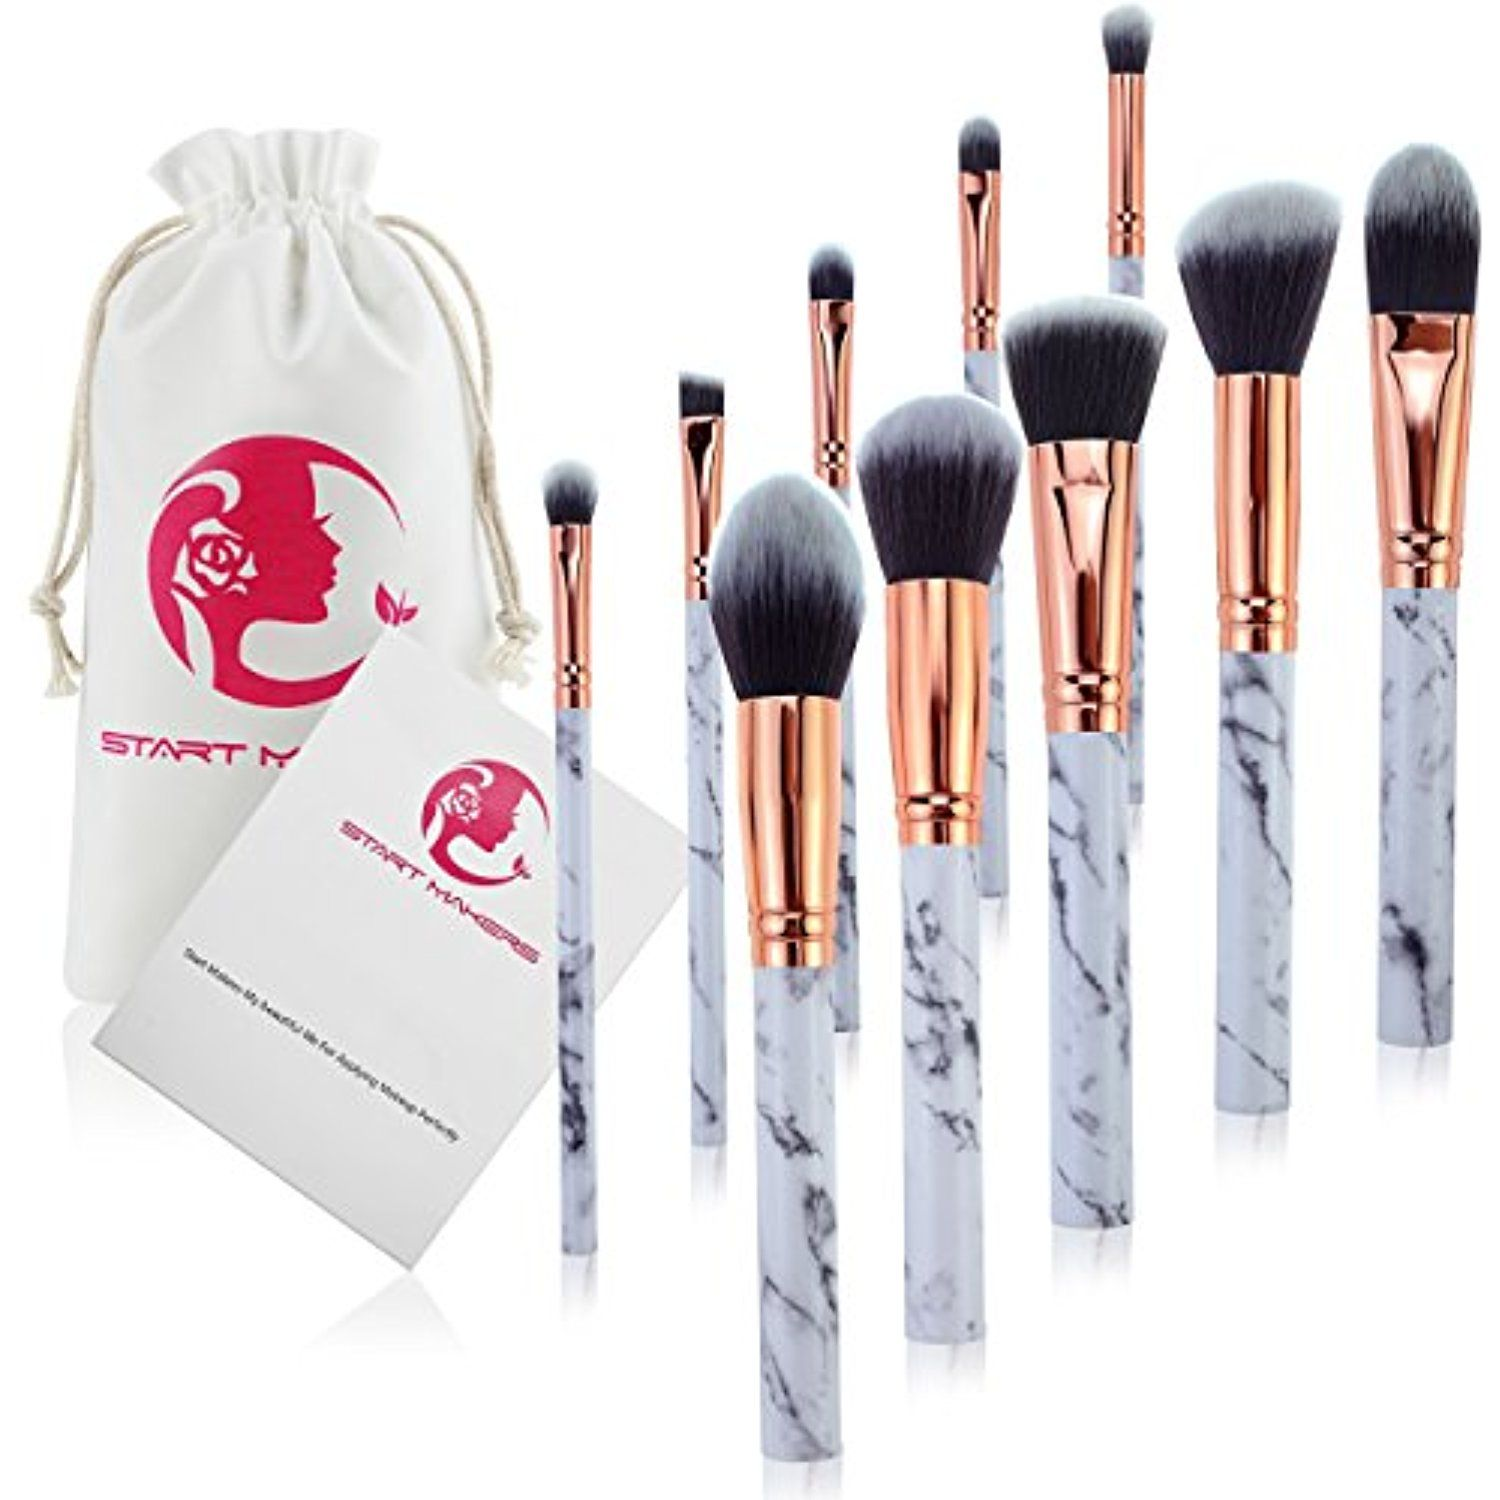 Makeup Brushes Start Makers 10 Pieces Marble Make Up Brushes Set Powder Blush Foundation Eye Shadow Eyebrow Bru Makeup Brush Set Eyebrow Shadow Eyebrow Brush